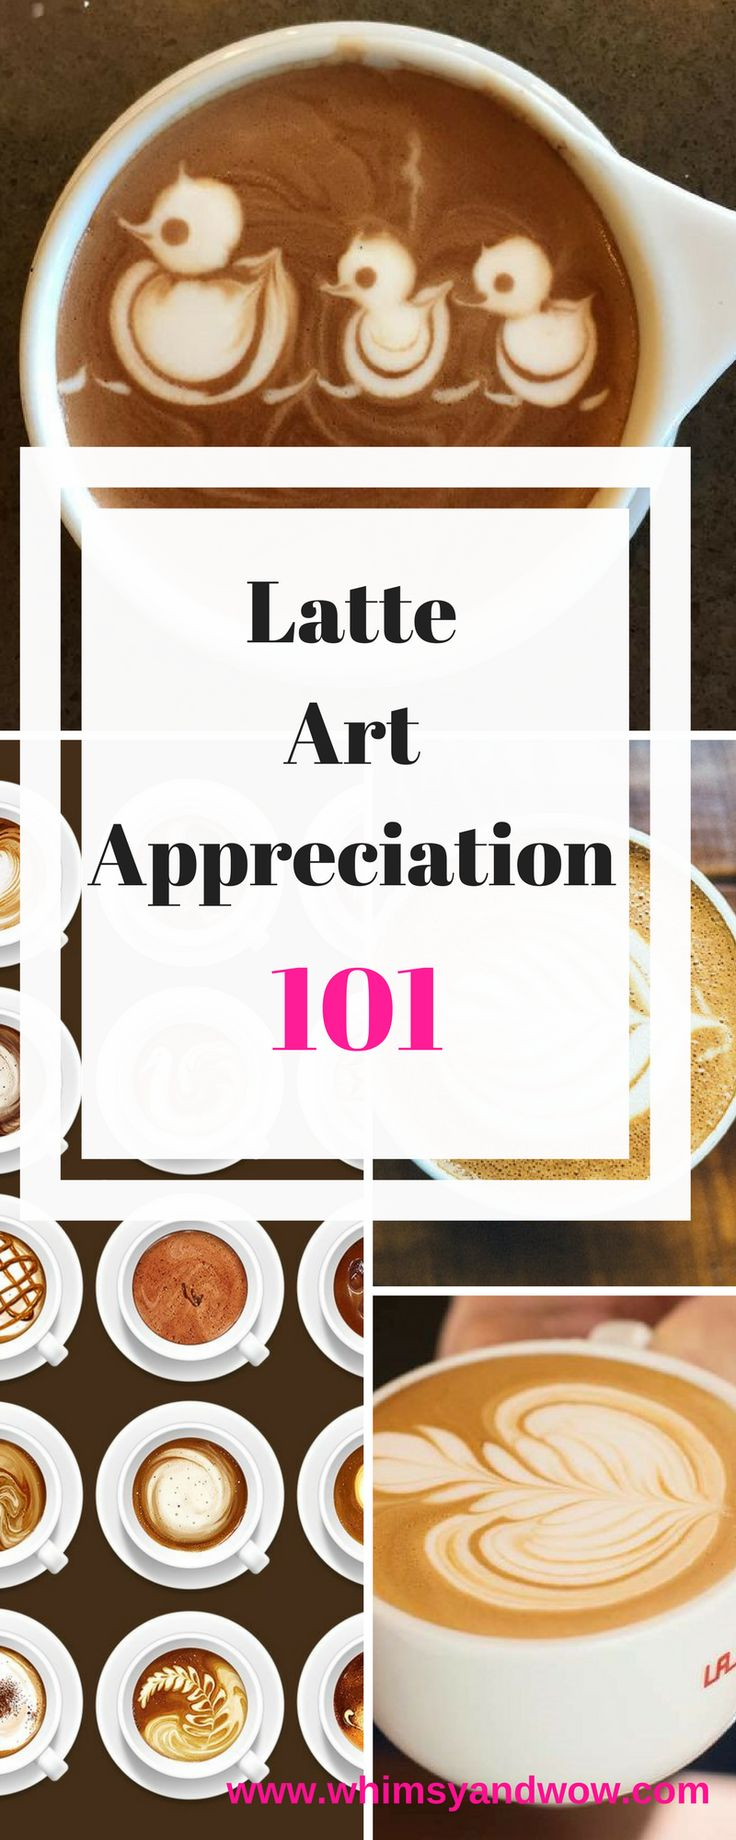 """Latte art is a big part of the popular exotic coffee trend. Baristas, servers that create these special coffees, used frothed milk to make """"art"""" on the top layer, called the crema, in lattes, cappuccinos and macchiatos"""